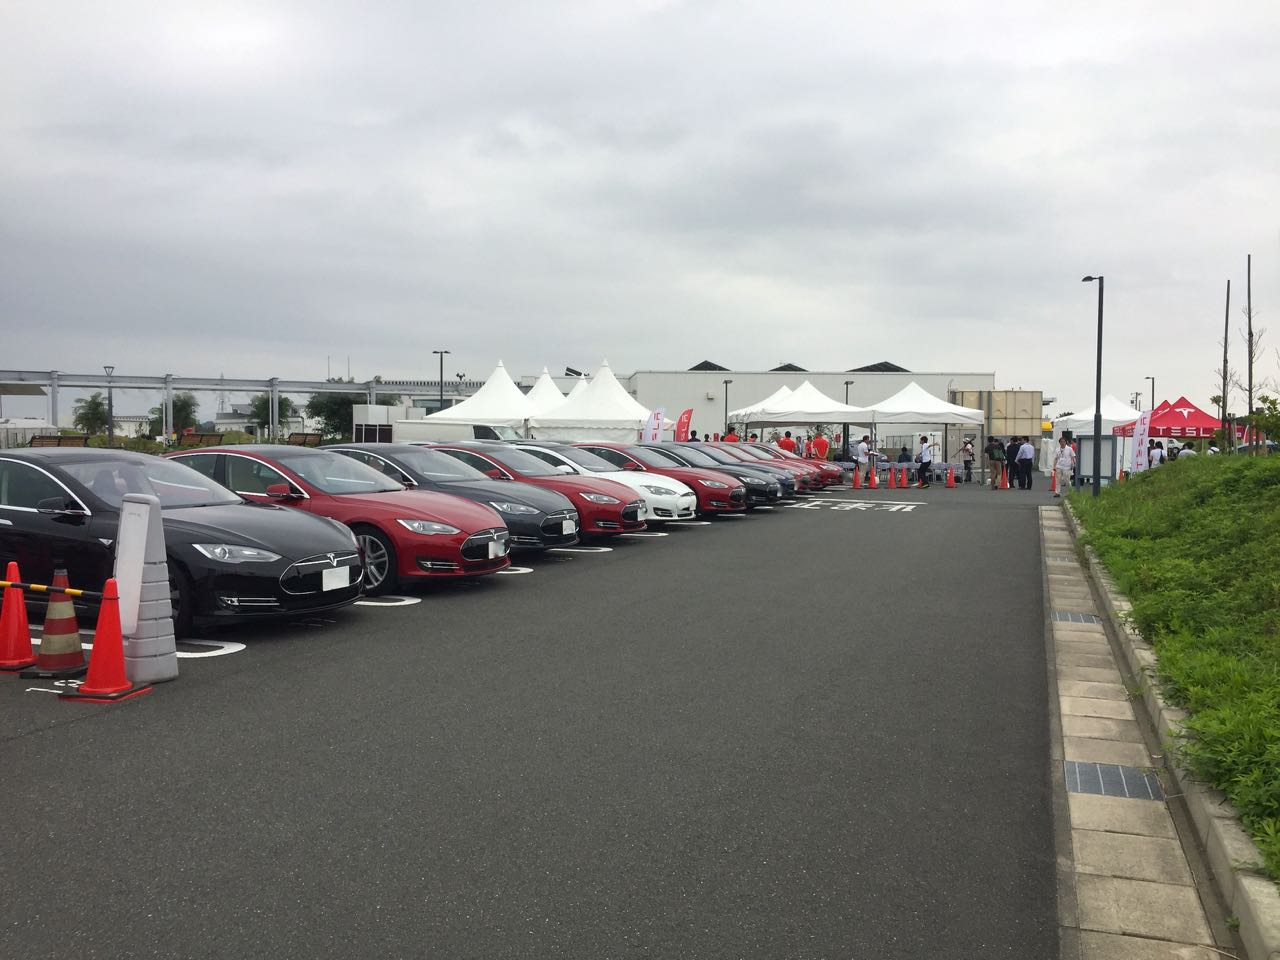 Double the number of Model S you see here, then add around ten. That's how many came for the event.